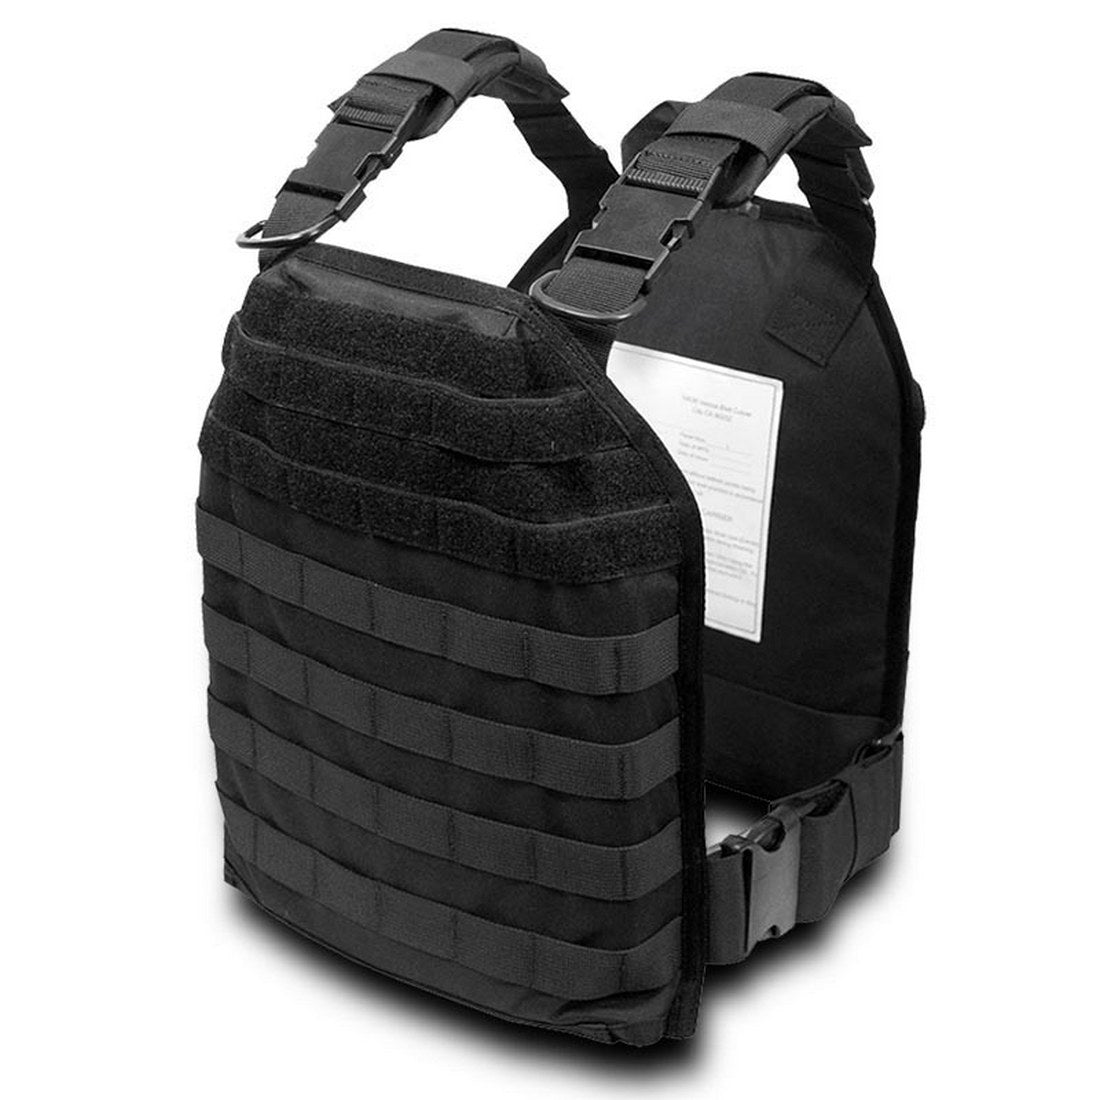 Modular Plate Carrier - Black